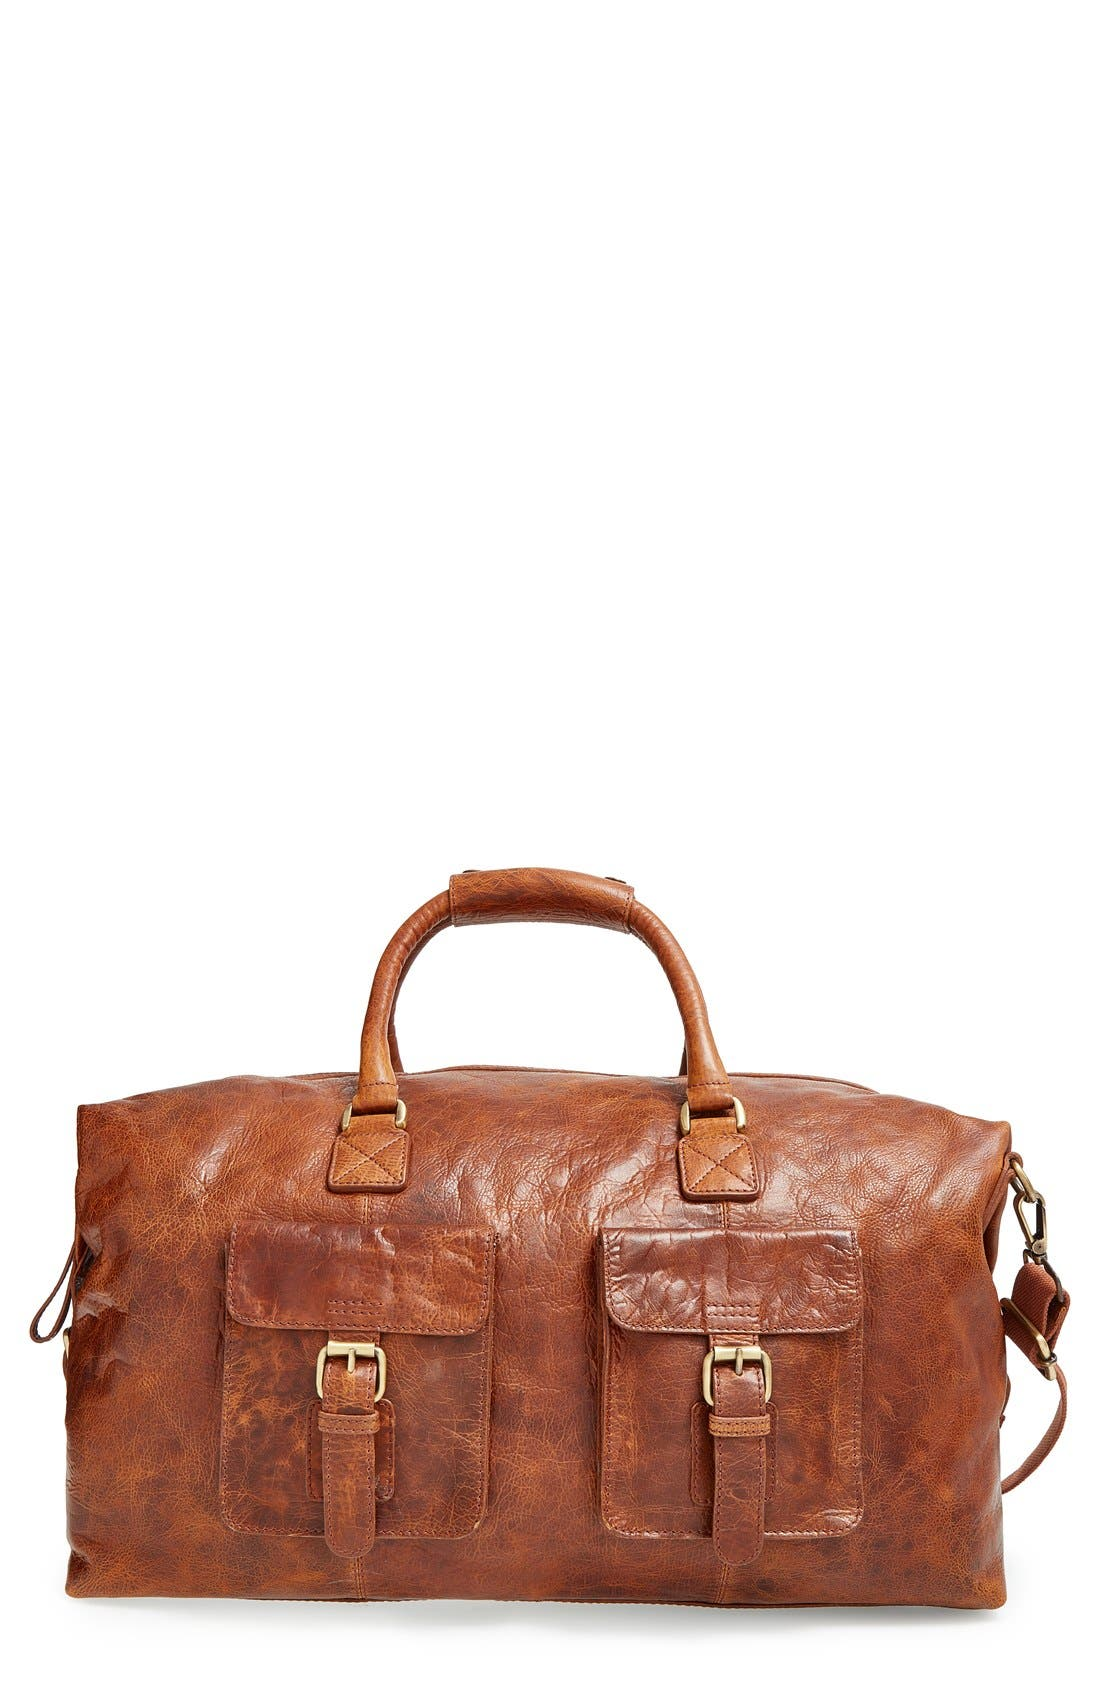 RAWLINGS Rugged Leather Duffel Bag